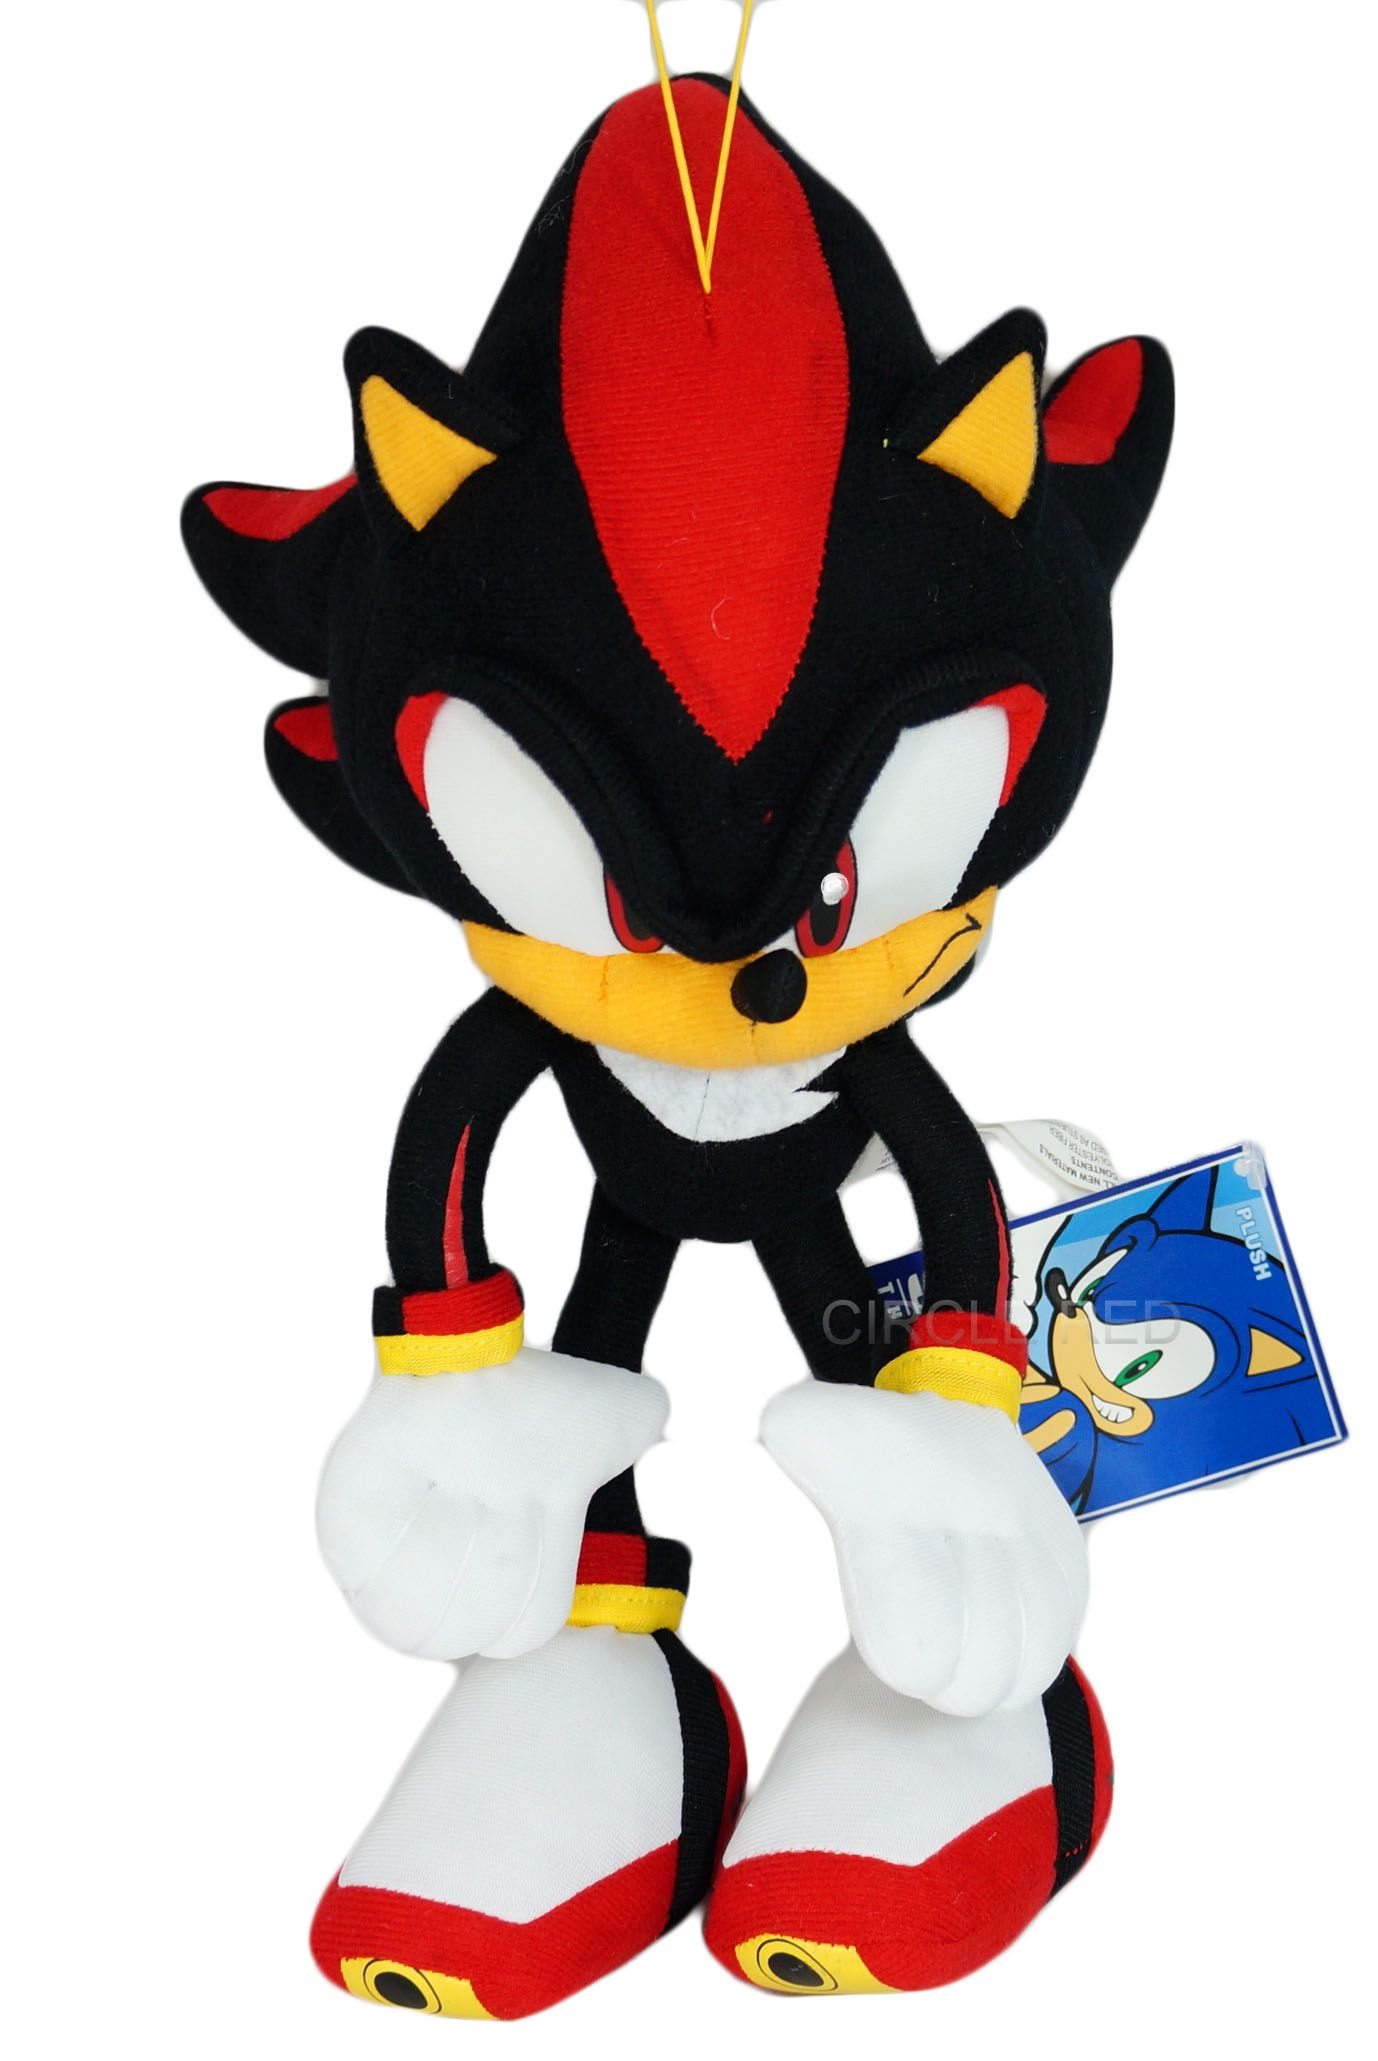 Super cool official Shadow the Hedgehog plush toy